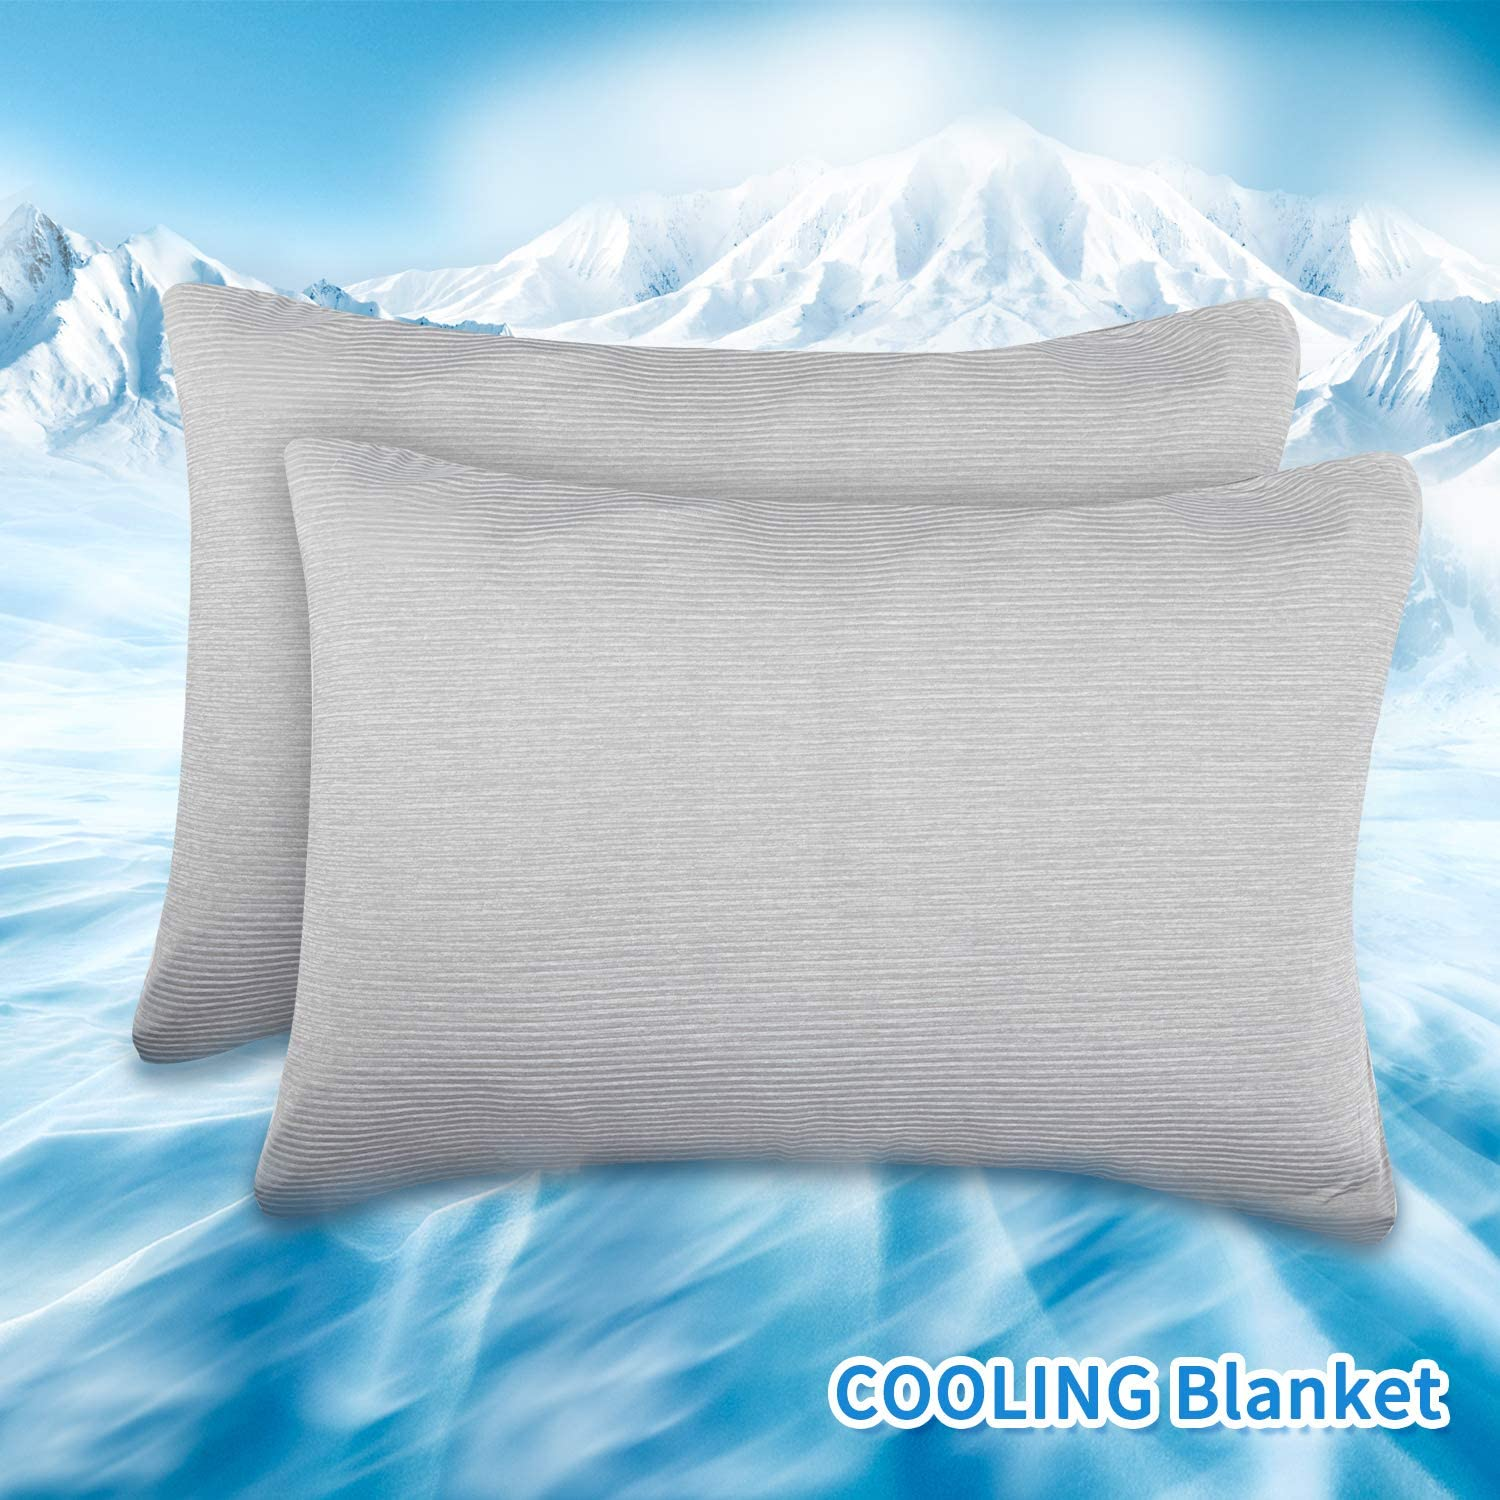 Boao 2 Pieces Cooling Pillowcases Breathable Cooling Pillow Cover for Night Sweat-Absorbent with Cool-to-Touch Technology Summer Soft Lightweight Cool Pillow Cases, Gray 19 x 29 inches